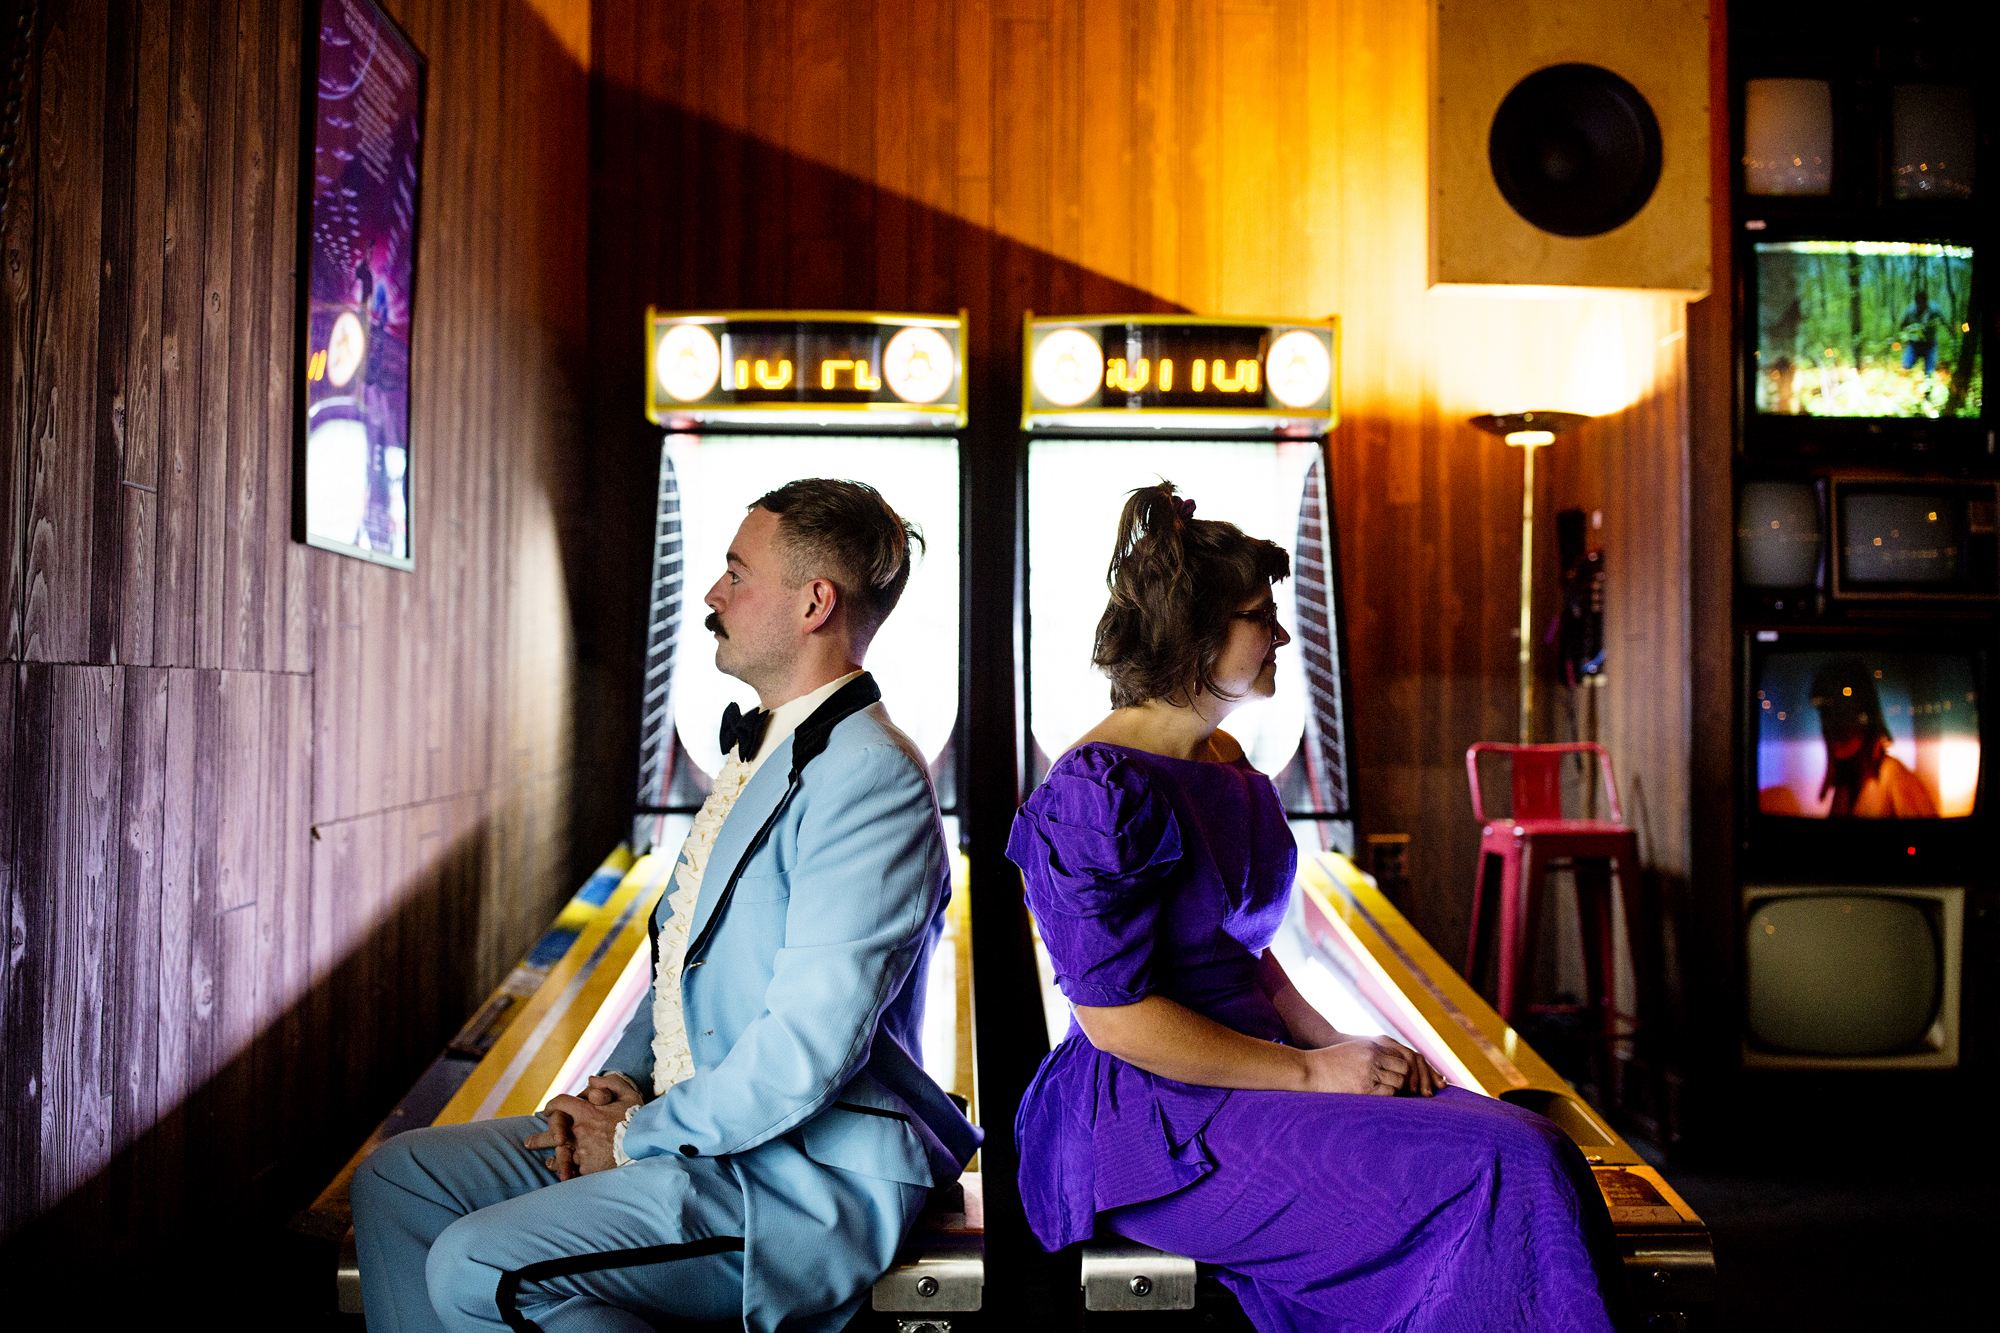 Seriously_Sabrina_Photography_Lexington_Kentucky_Burl_Arcade_80s_Prom_JoeTivoli_27.jpg